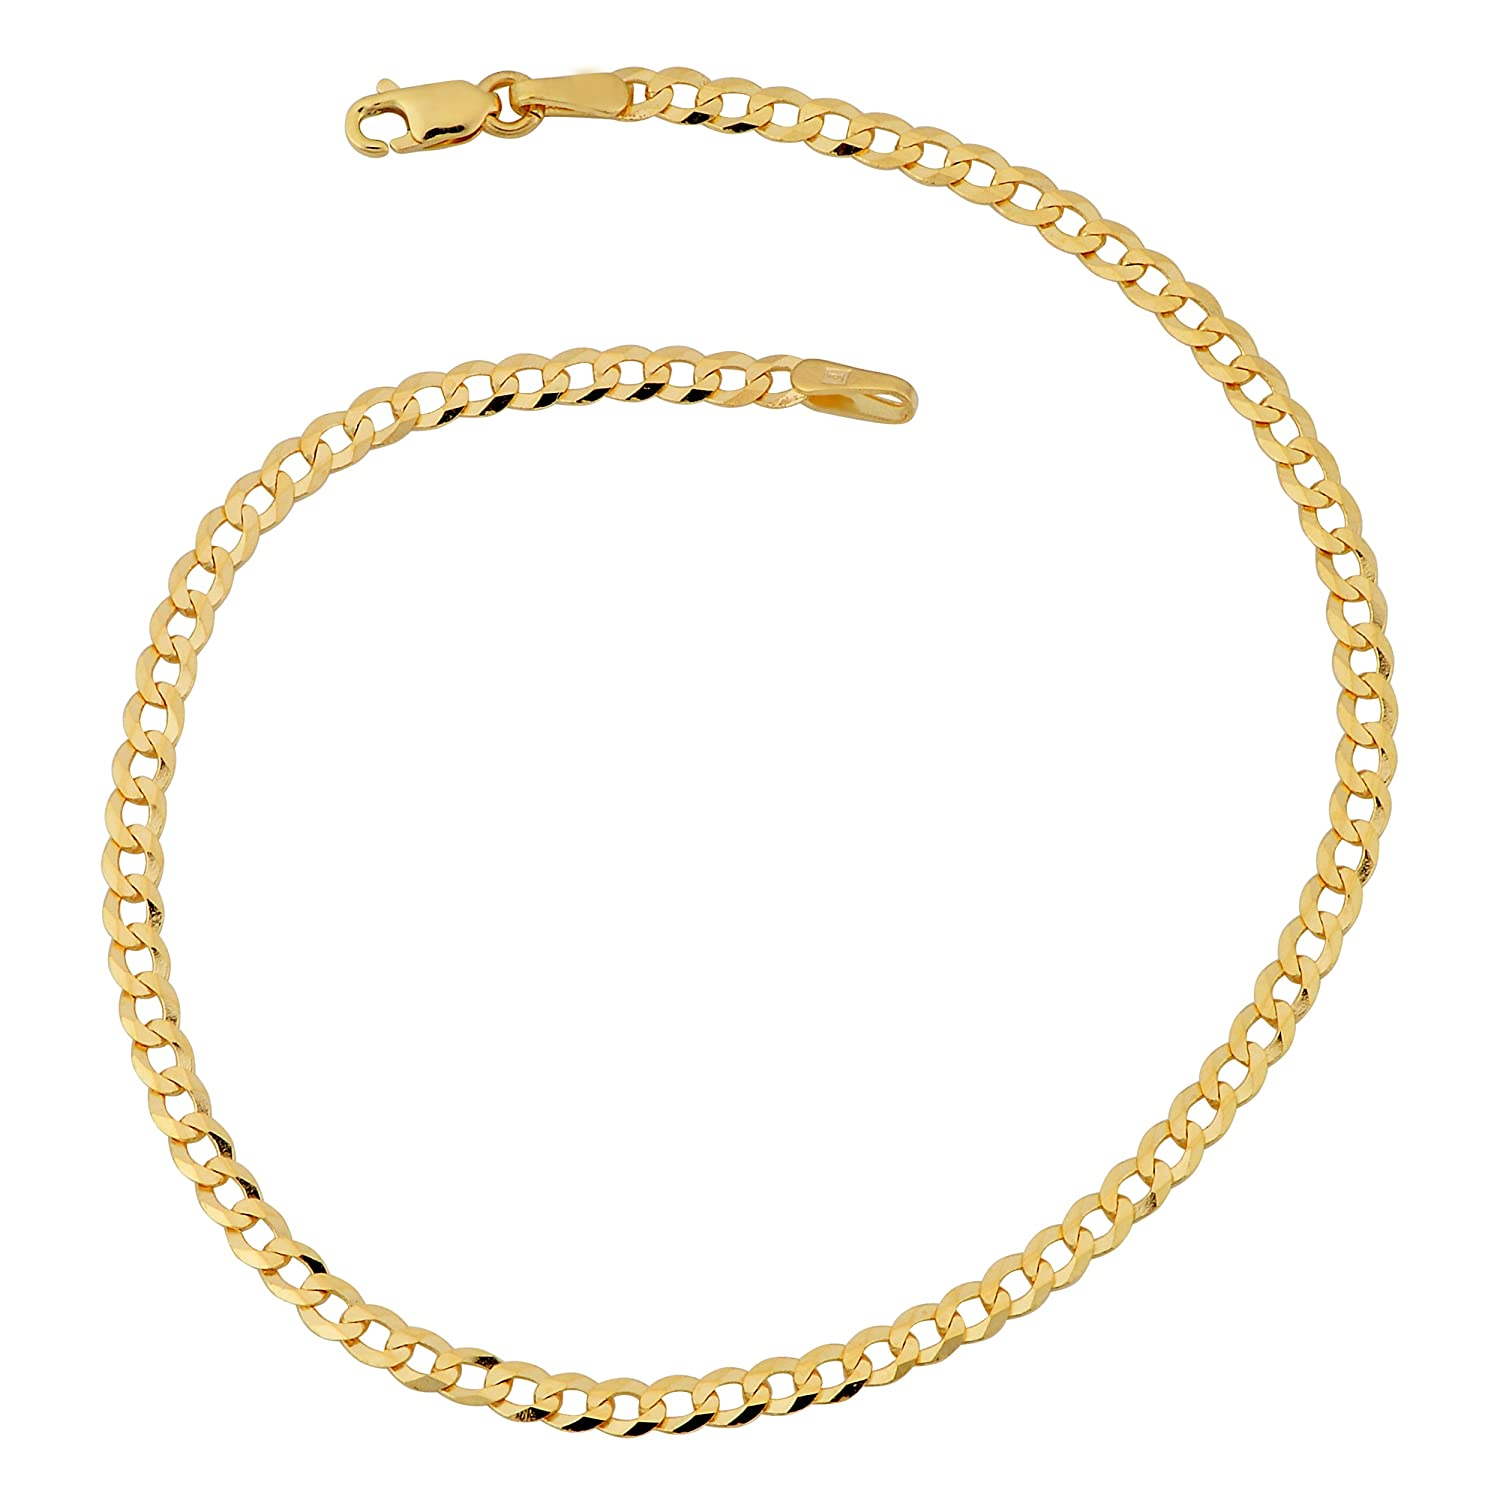 10k Yellow Gold 2.7mm High Polish Curb Link Bracelet (7 or 8 inches)